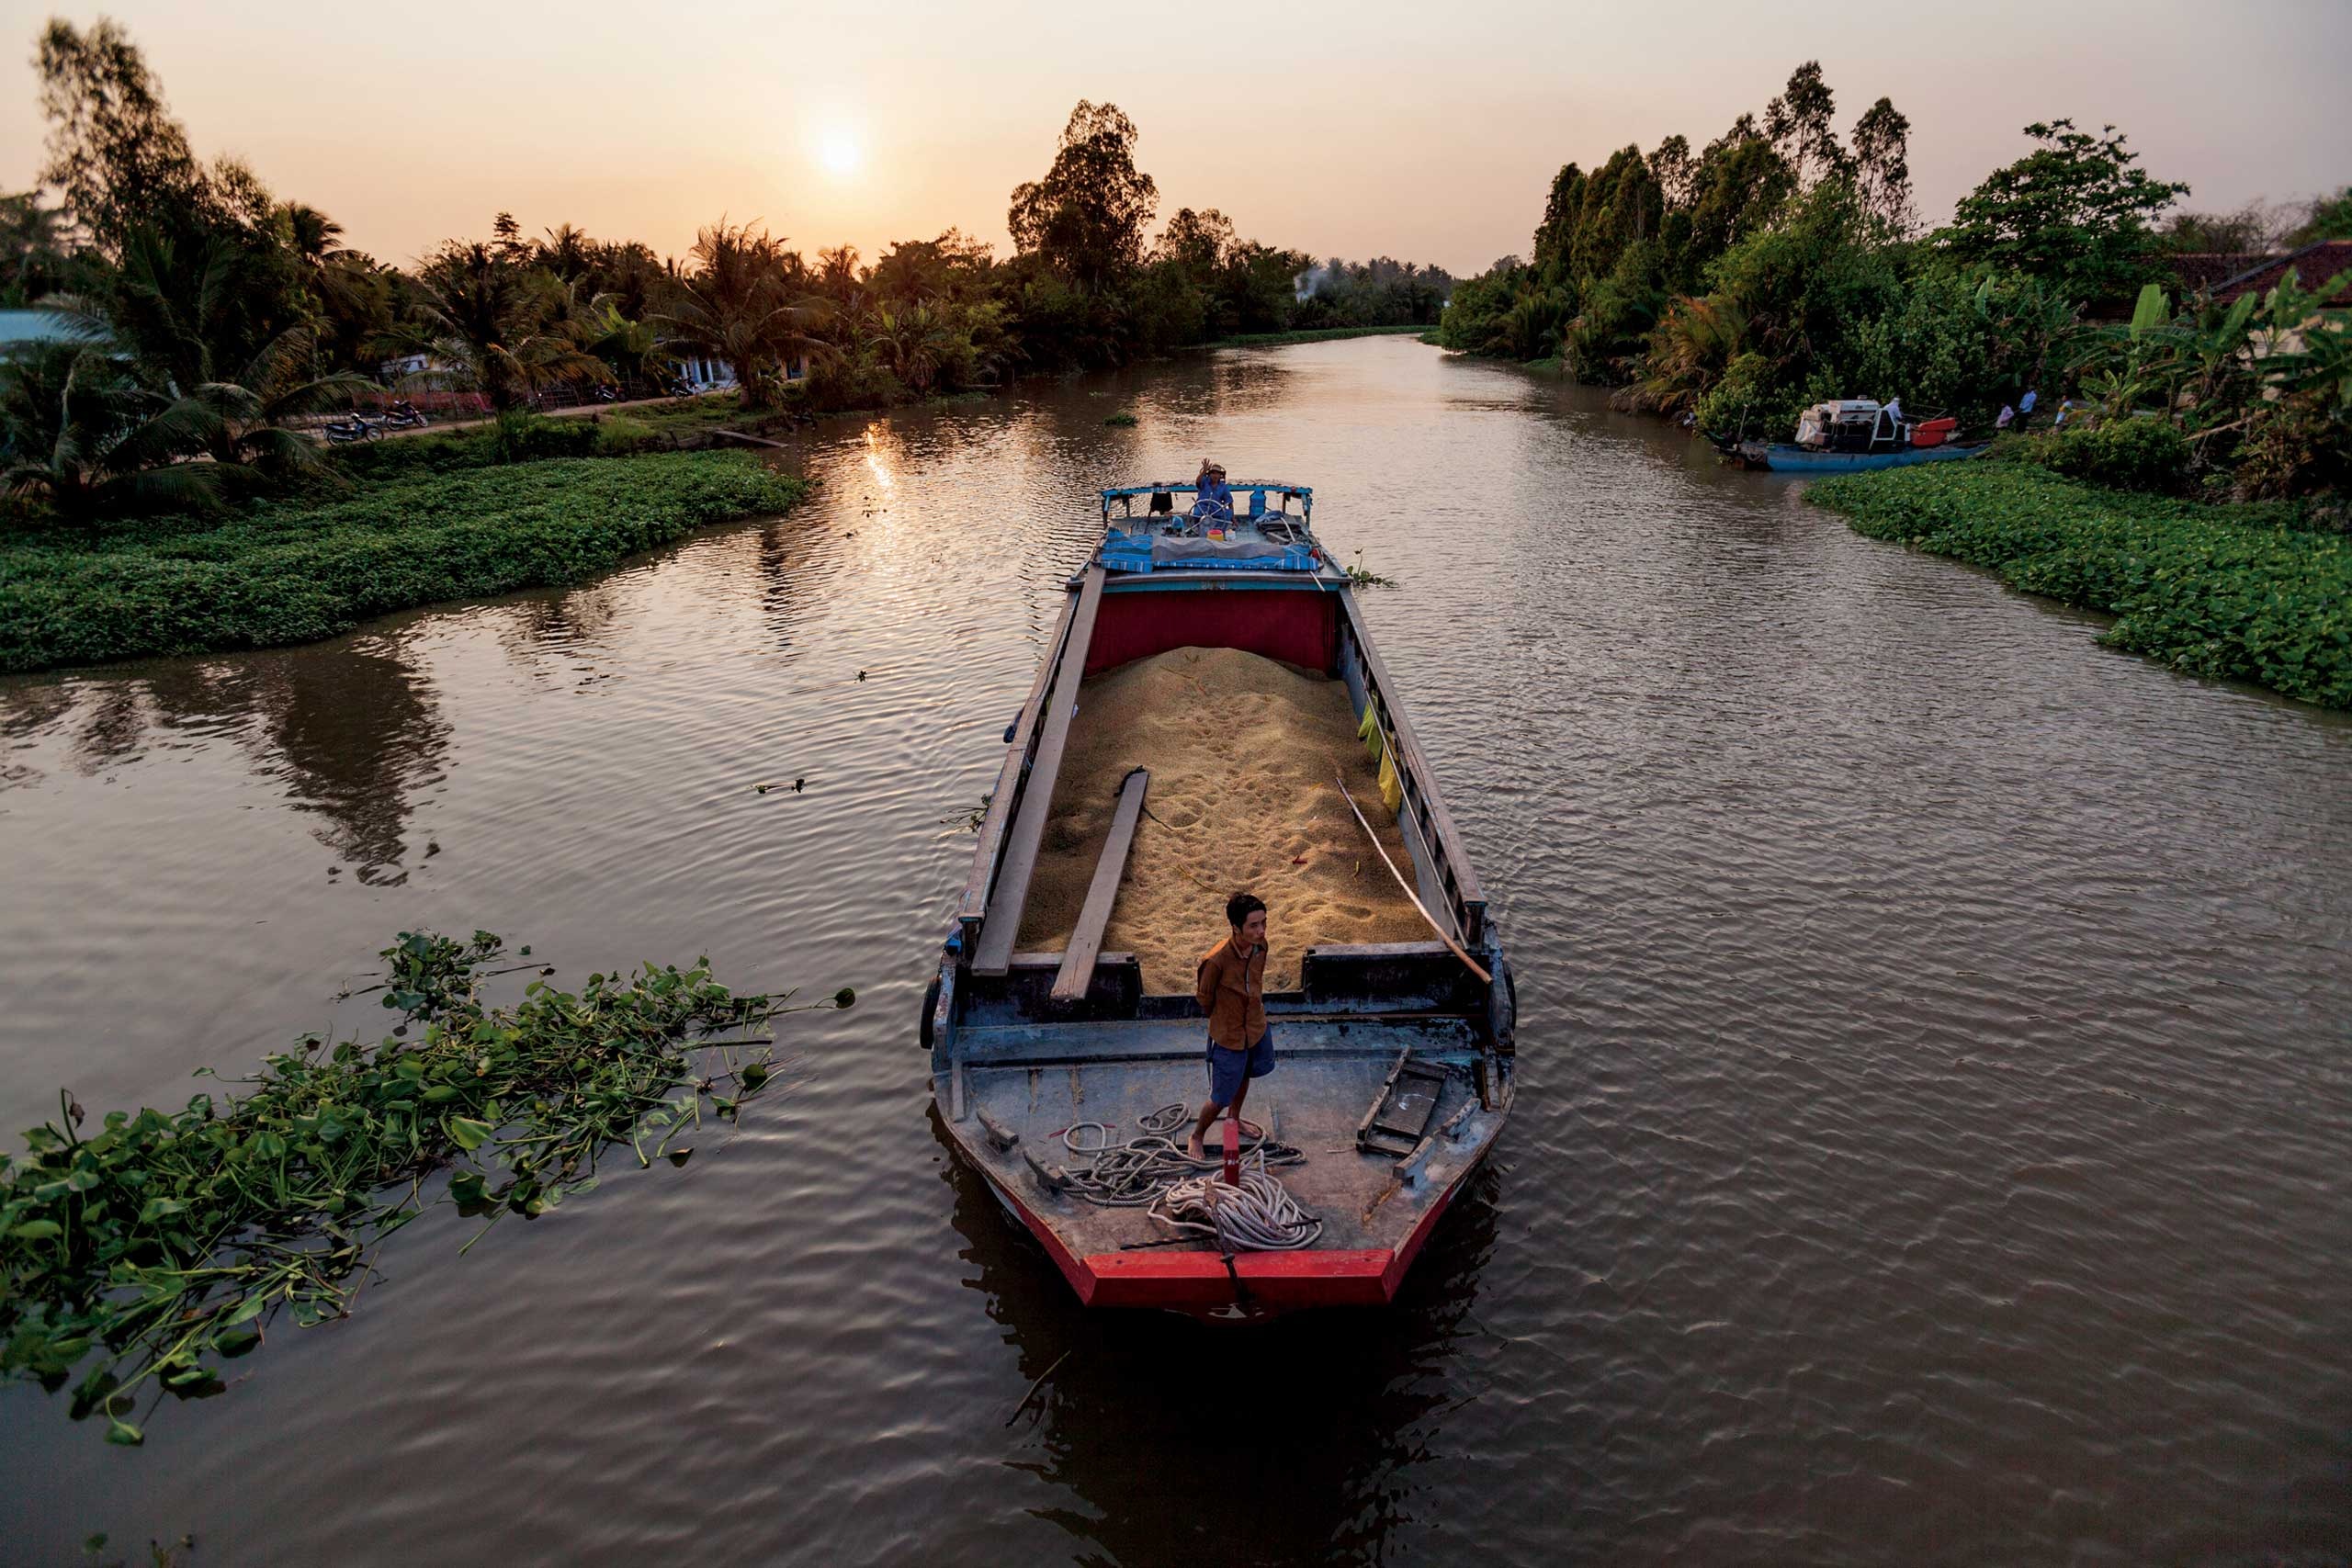 From the May issue of National Geographic magazine: Harnessing the Mekong                               Vietnam                               A riverboat loaded with rice moves slowly through one of the canals that crisscross the delta. Dams will trap fertile sediments upstream, threatening harvests.